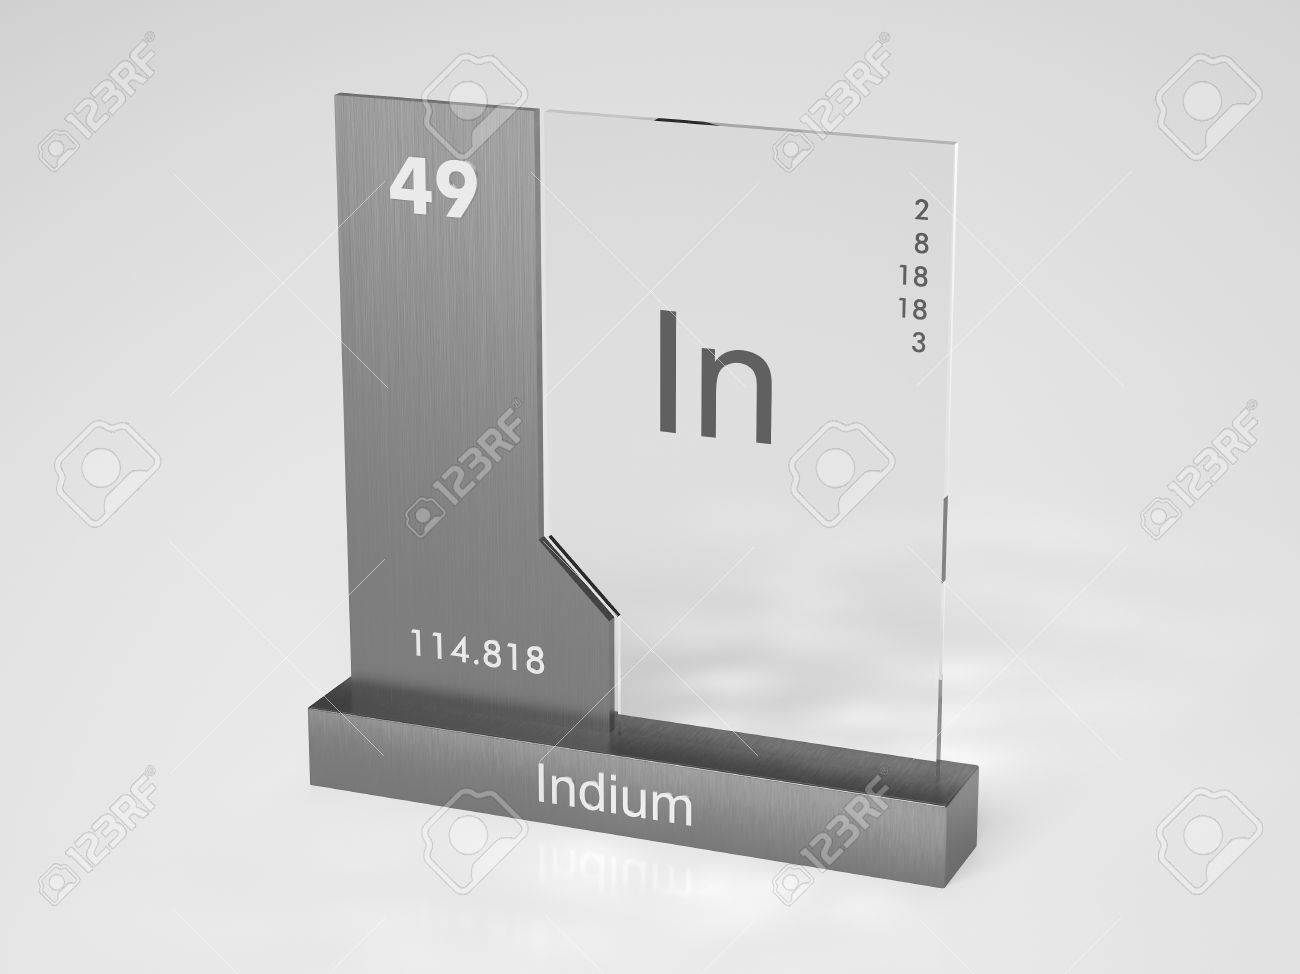 Indium symbol in chemical element of the periodic table stock indium symbol in chemical element of the periodic table stock photo 10470010 biocorpaavc Images